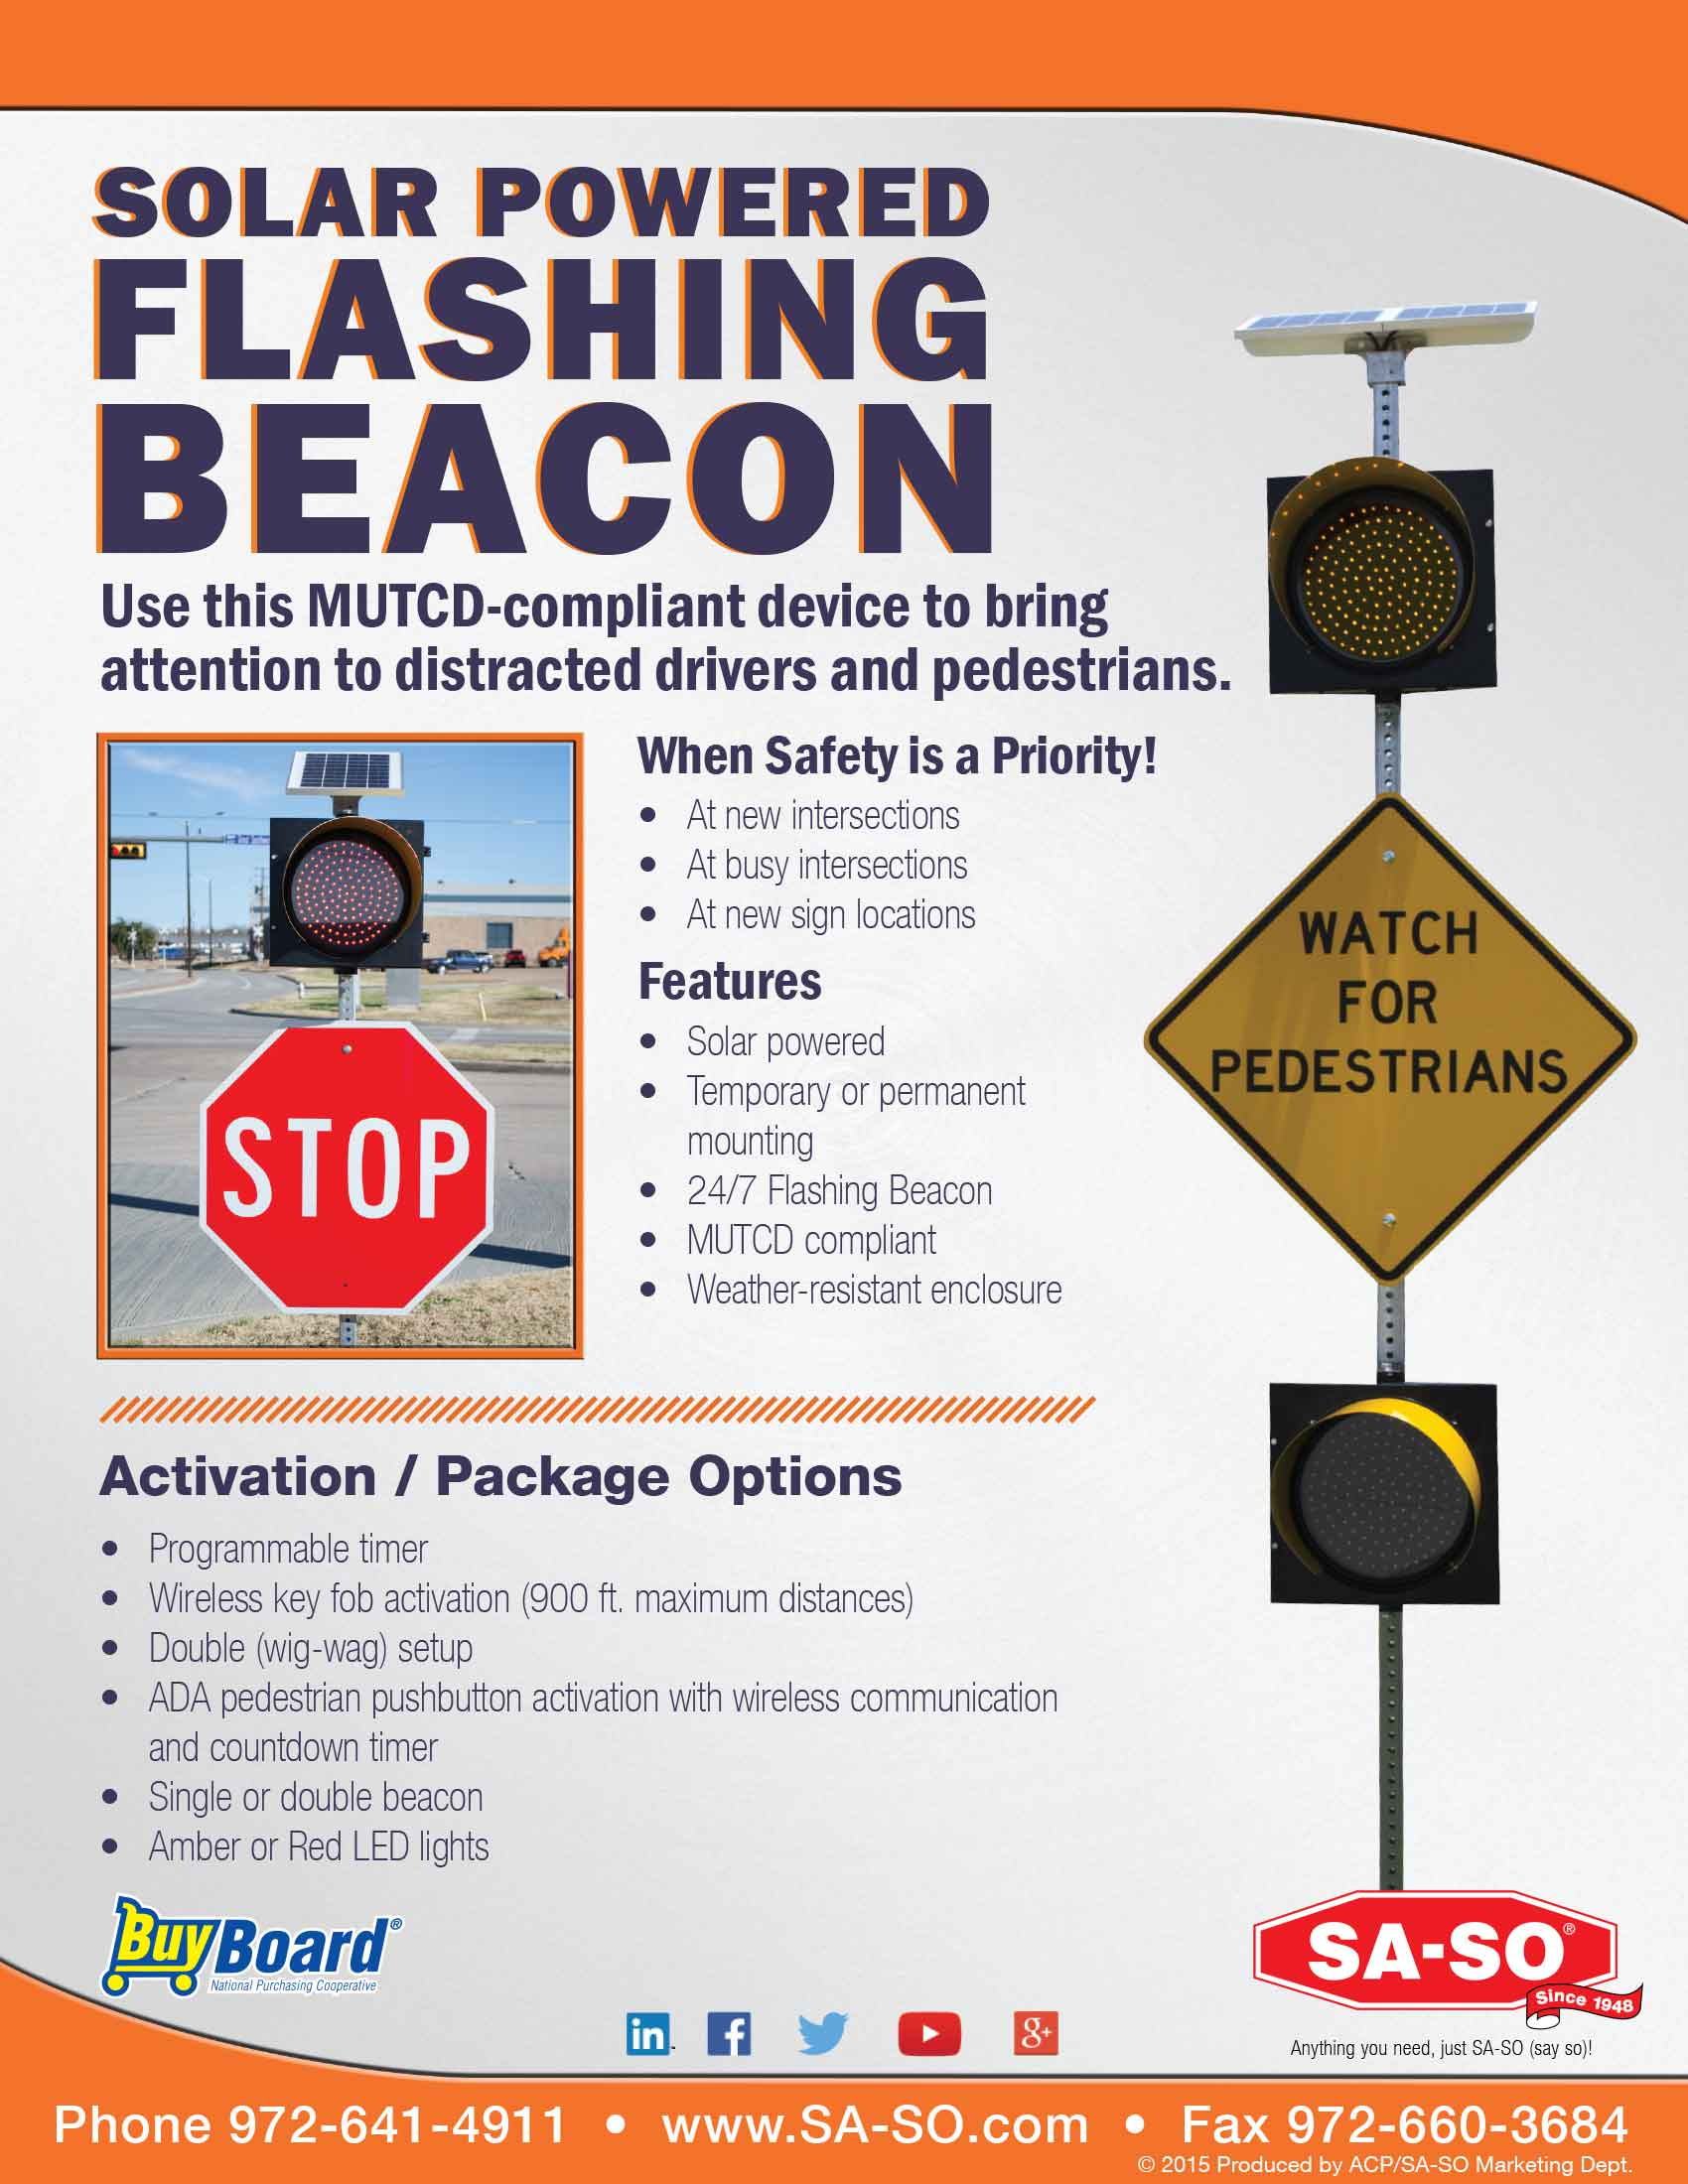 sa-so traffic  safety and facility products